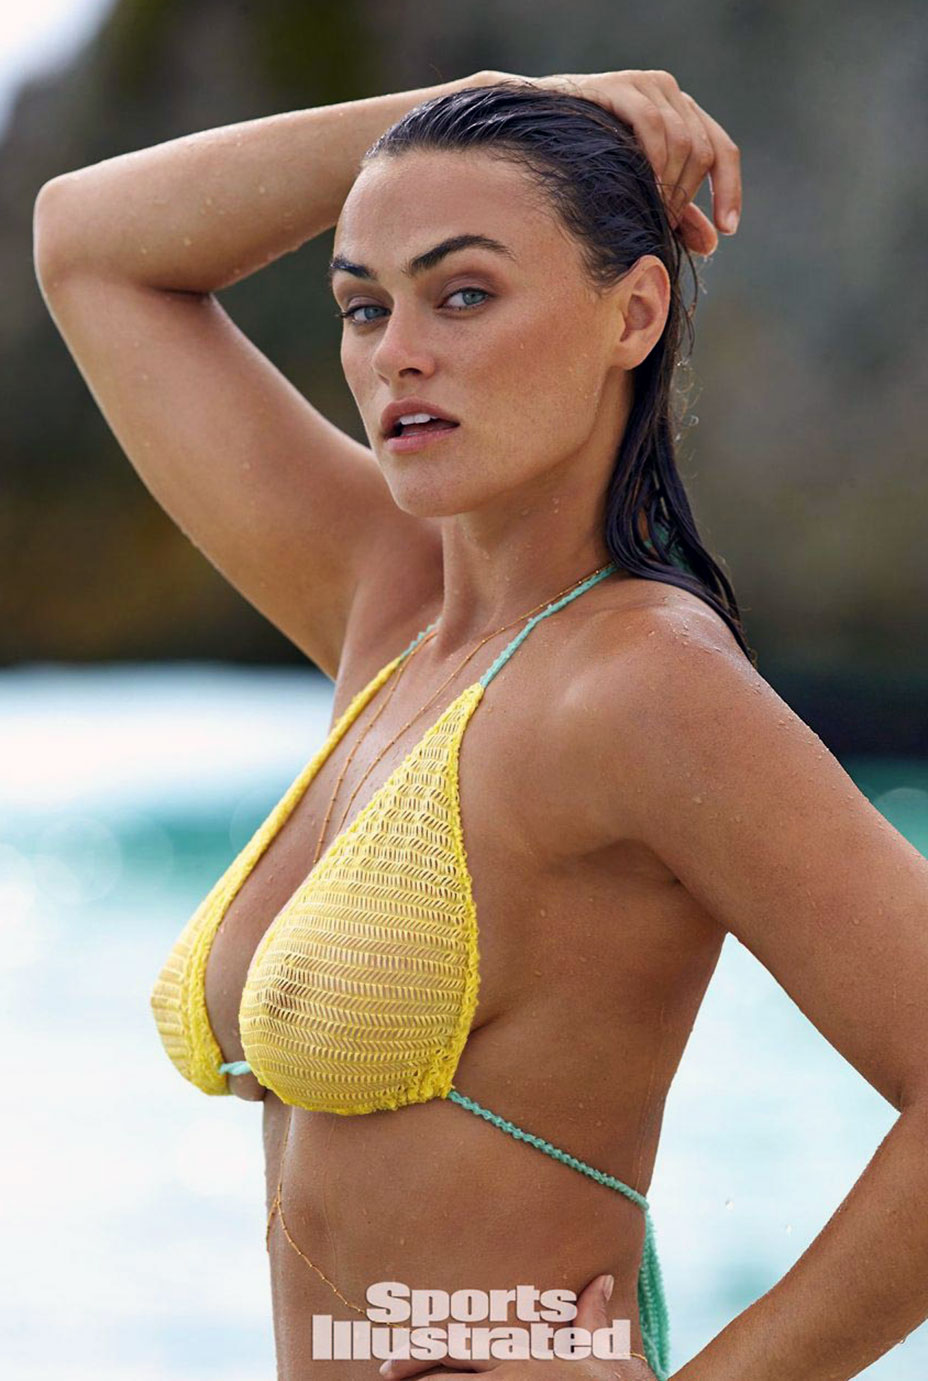 Myla Dalbesio Naked and Topless Photo Collection - Leaked